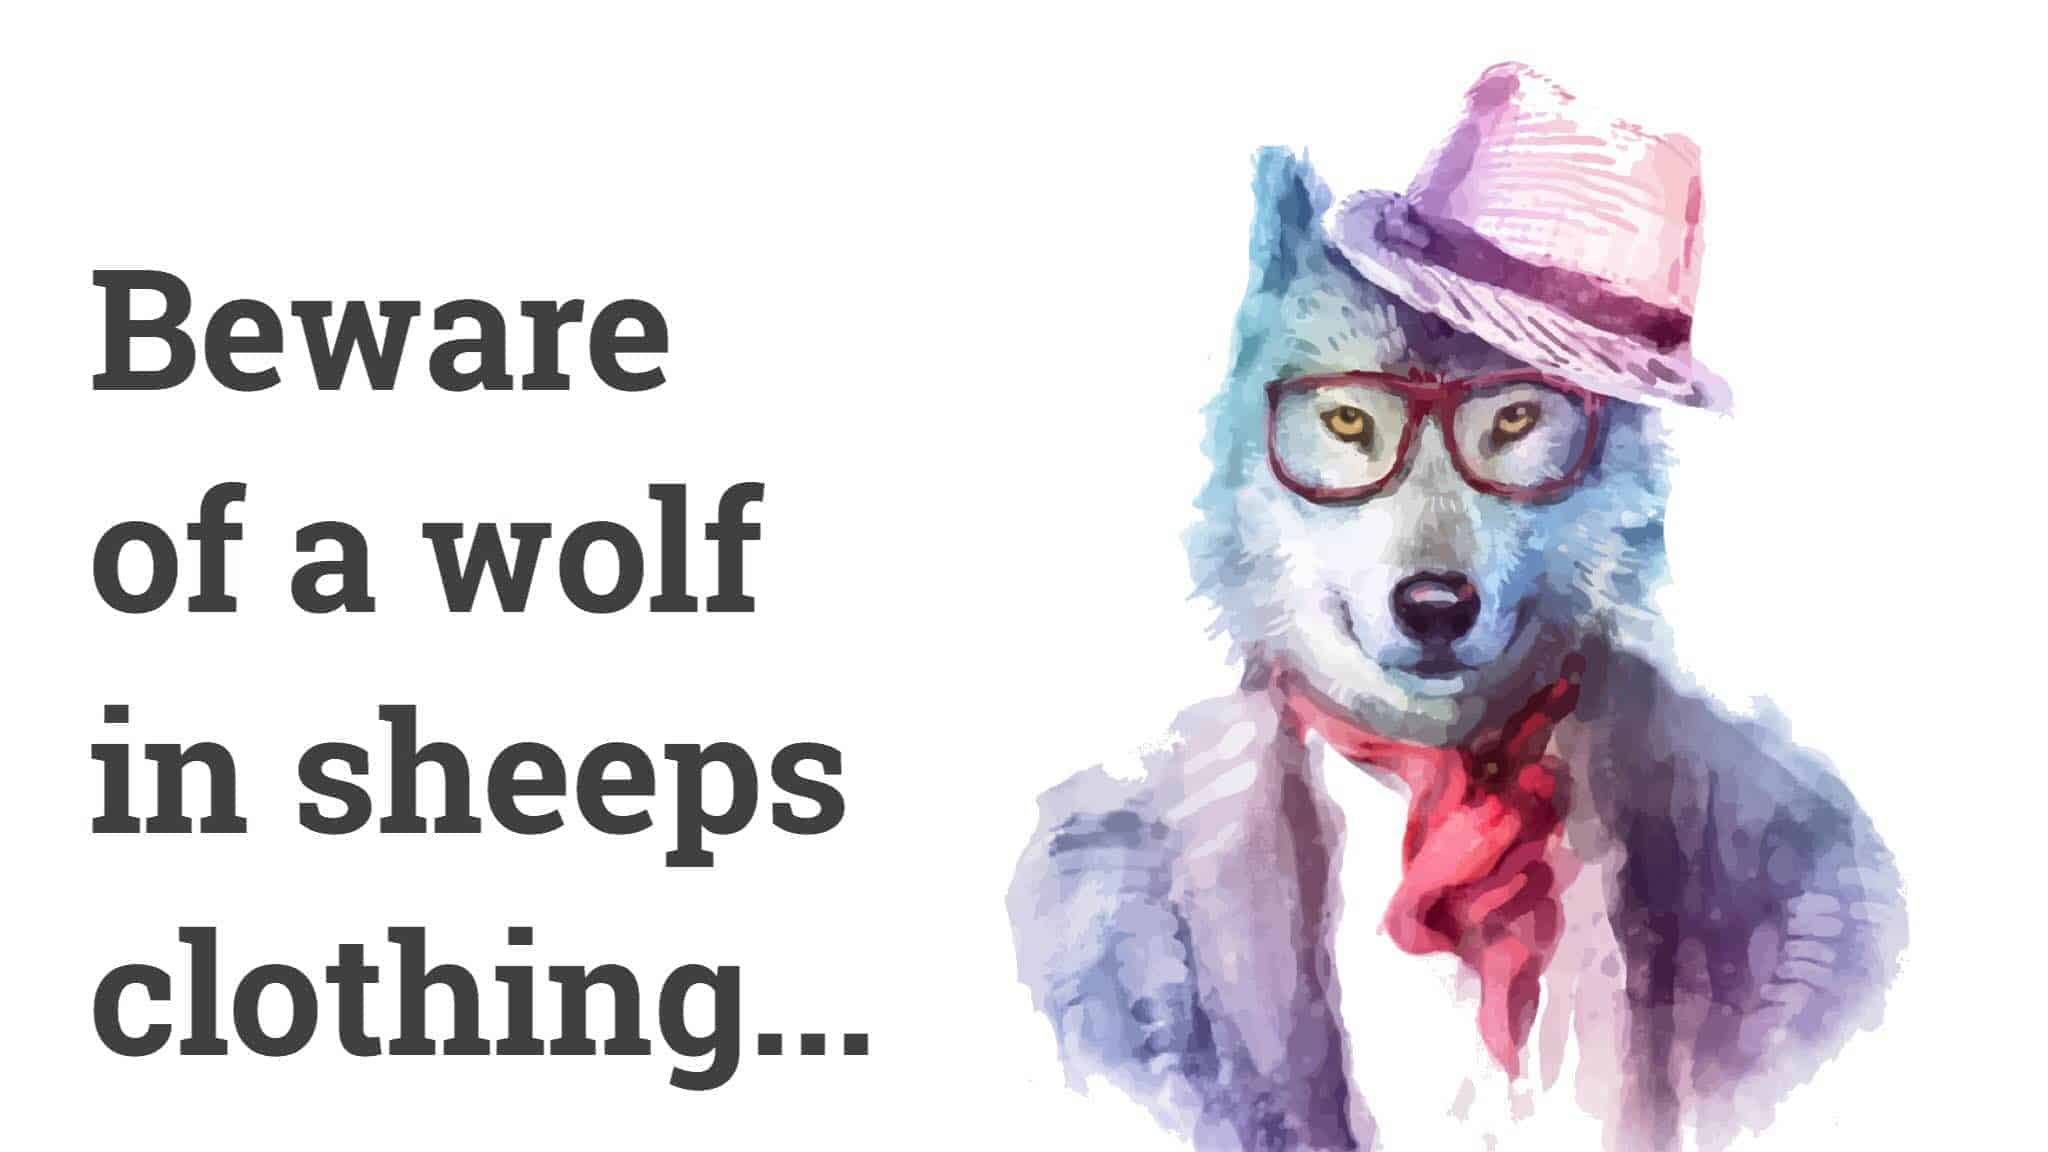 the wolf in sheeps clothing